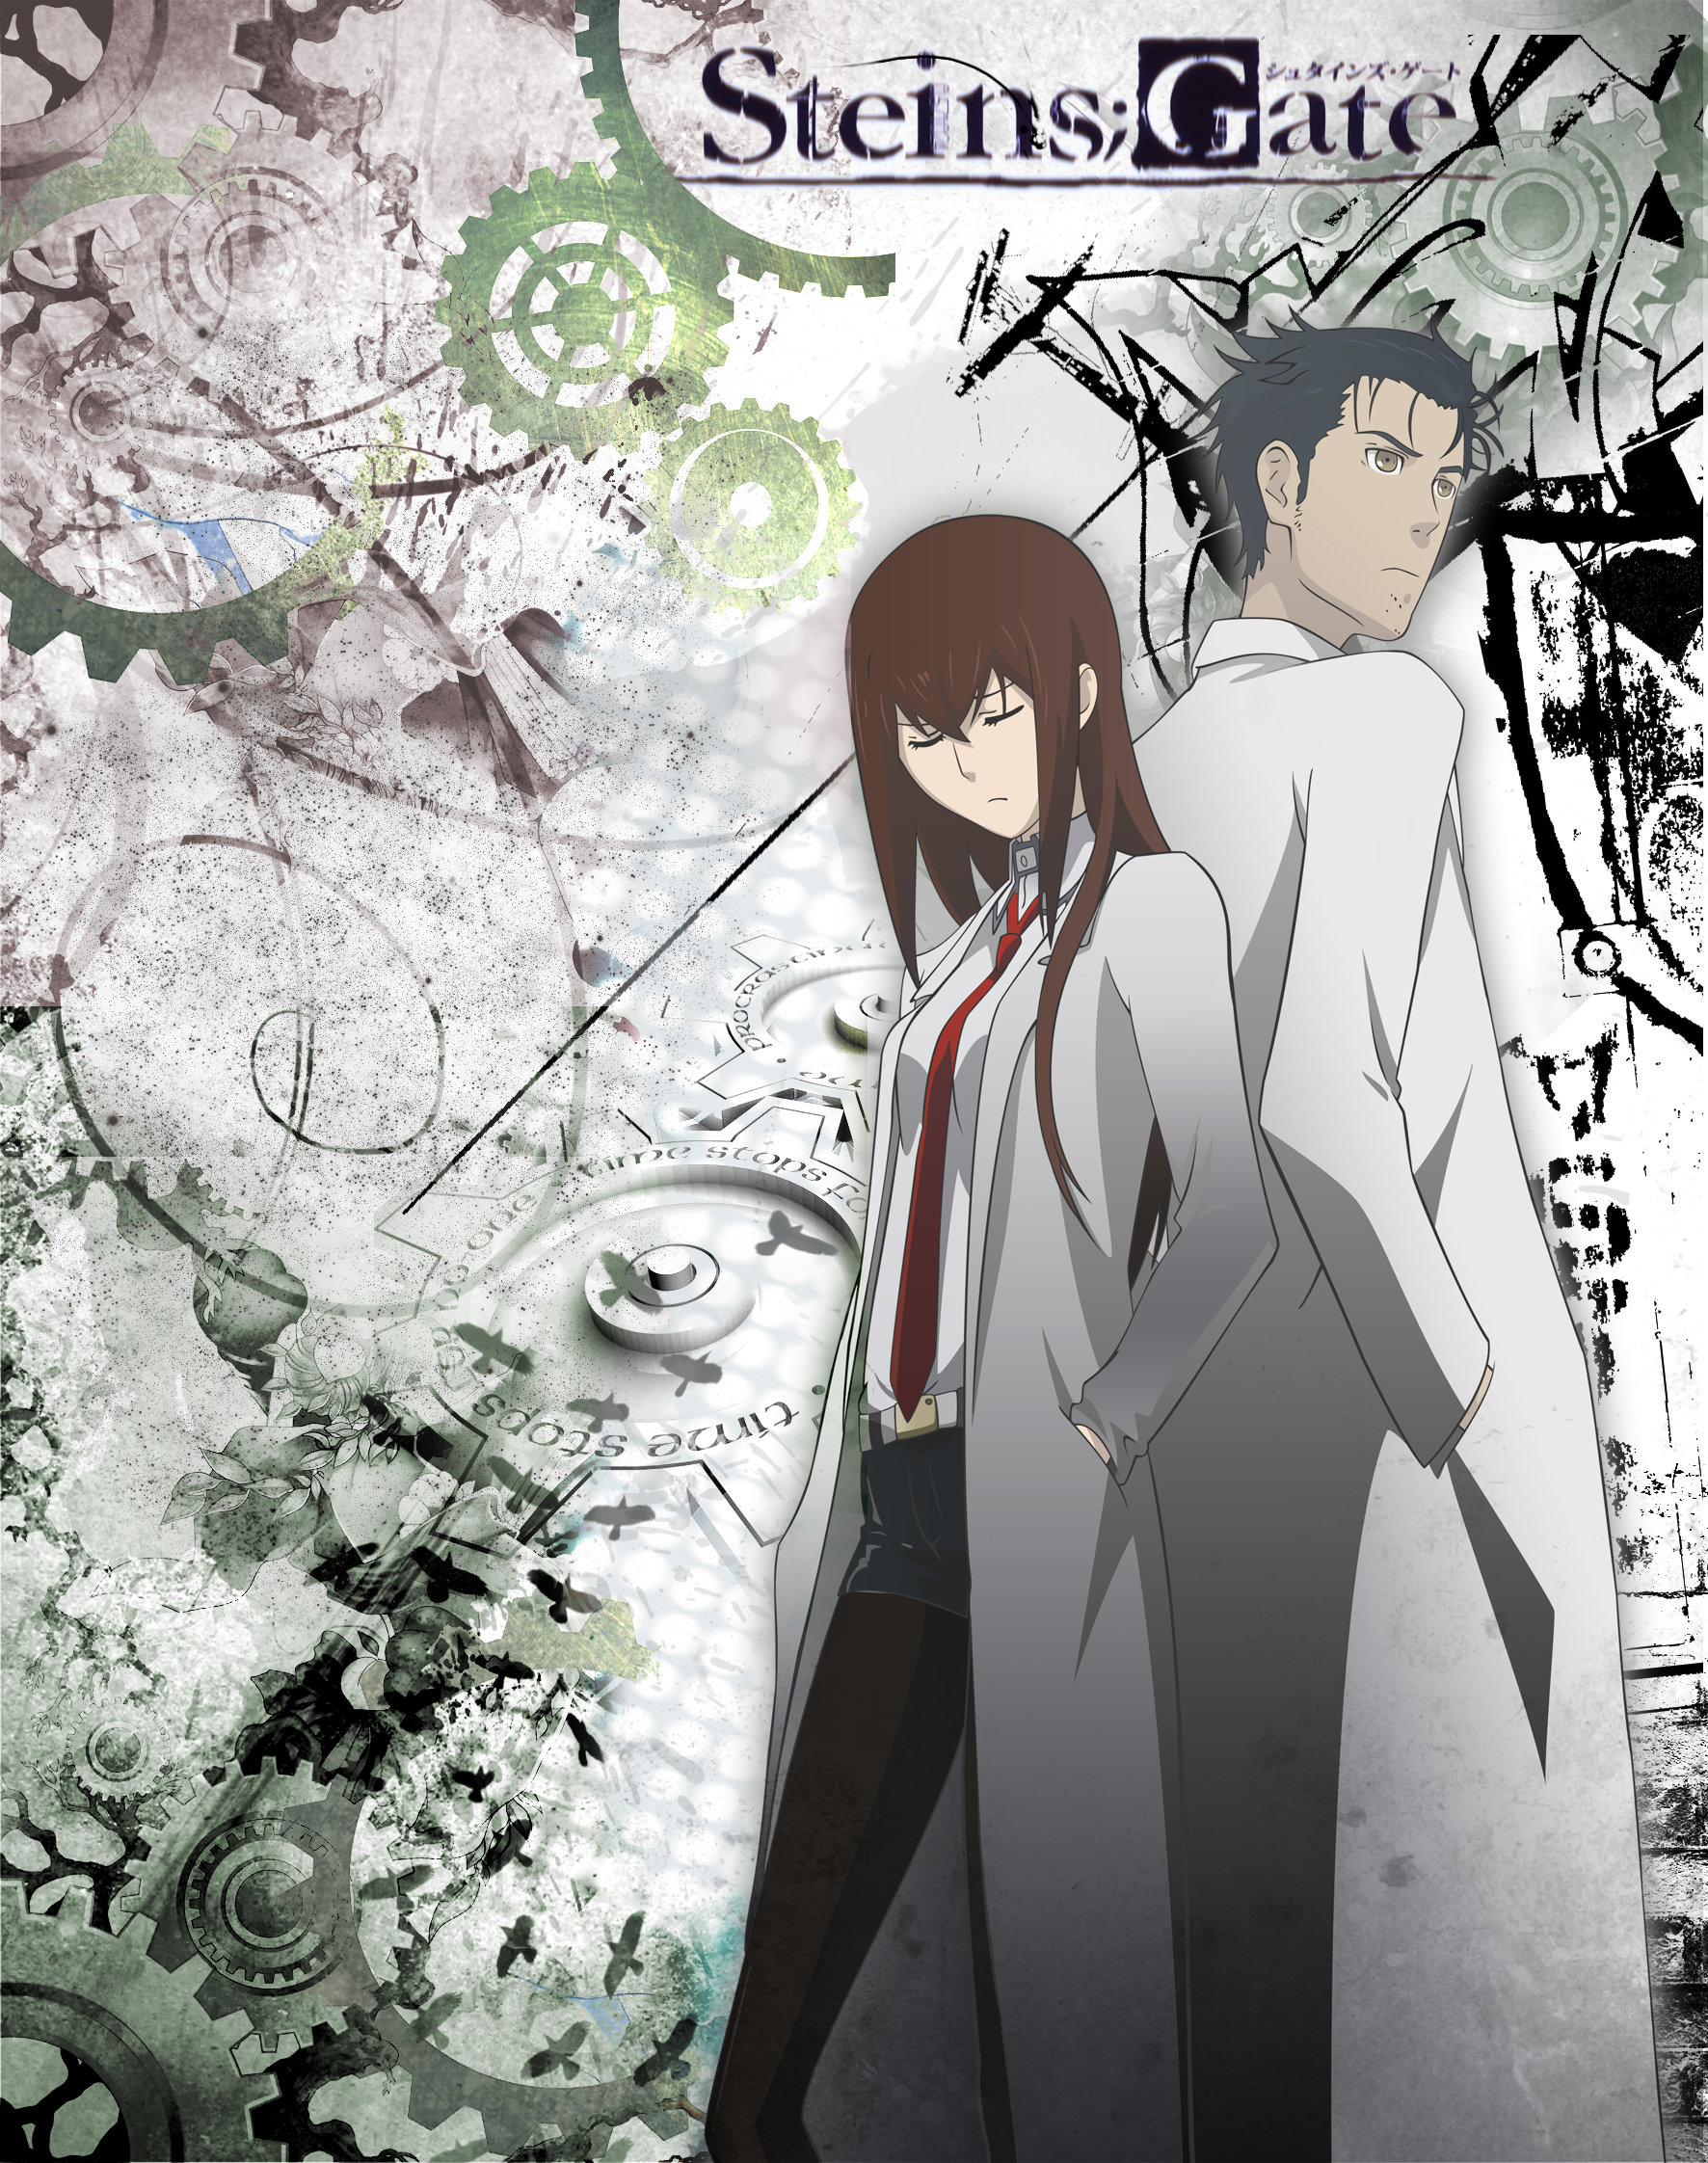 okabe and kurisu relationship marketing